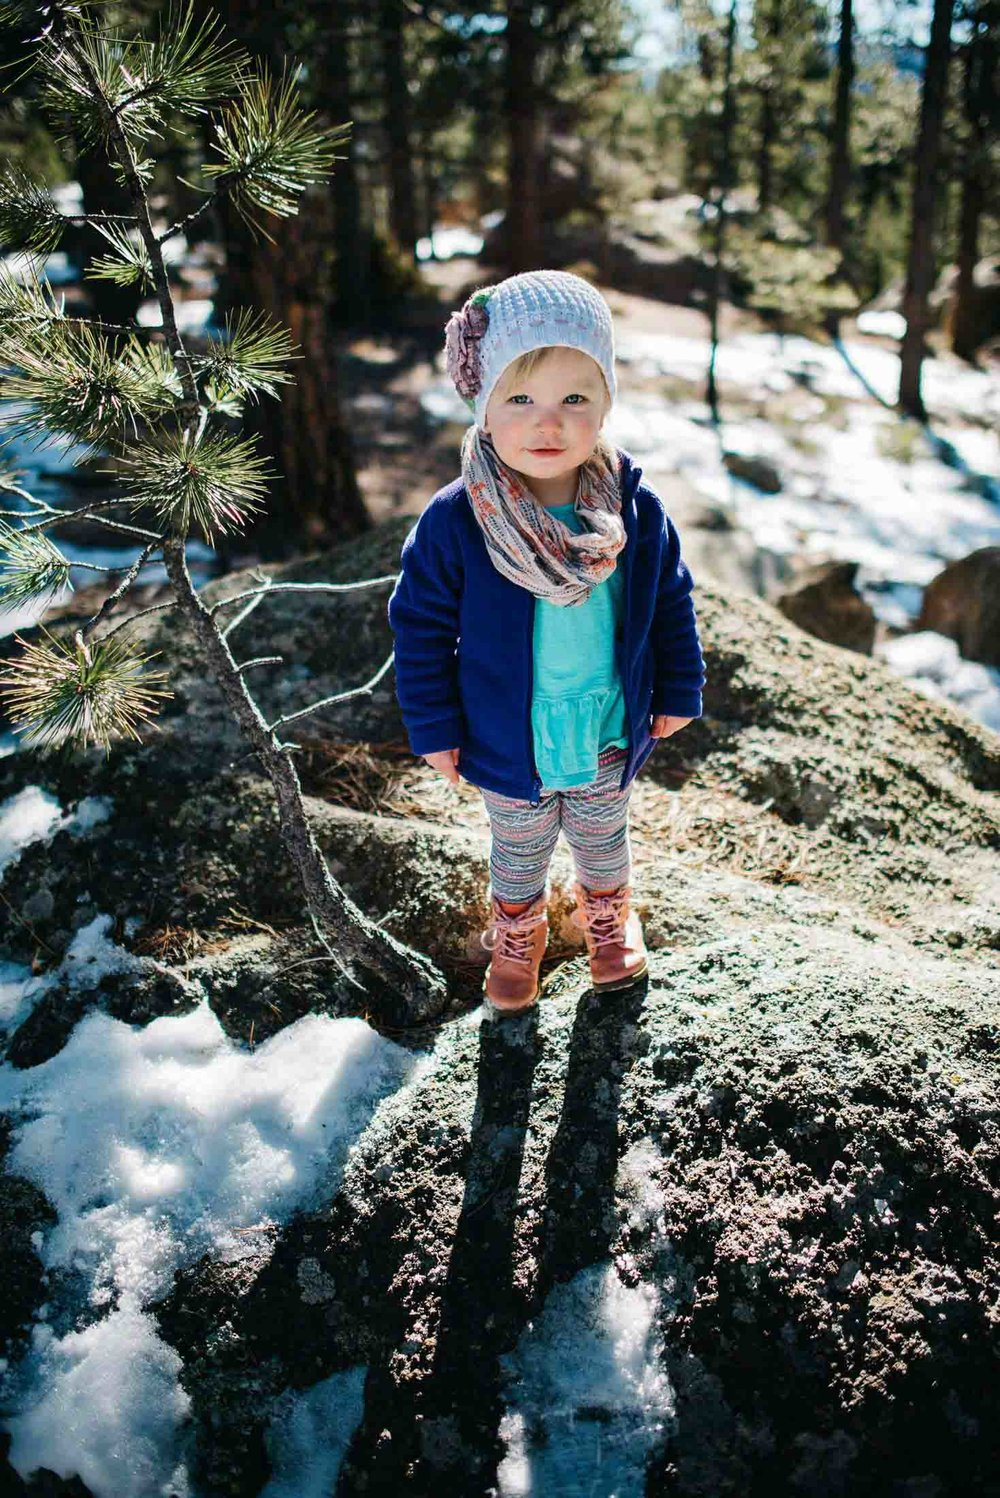 37-emmy-searching-for-the-light-photography-colorado-photographer-elopement-photographer-dance-photographer-couple-photographer_olive-mae-21mo-hike-42.jpg